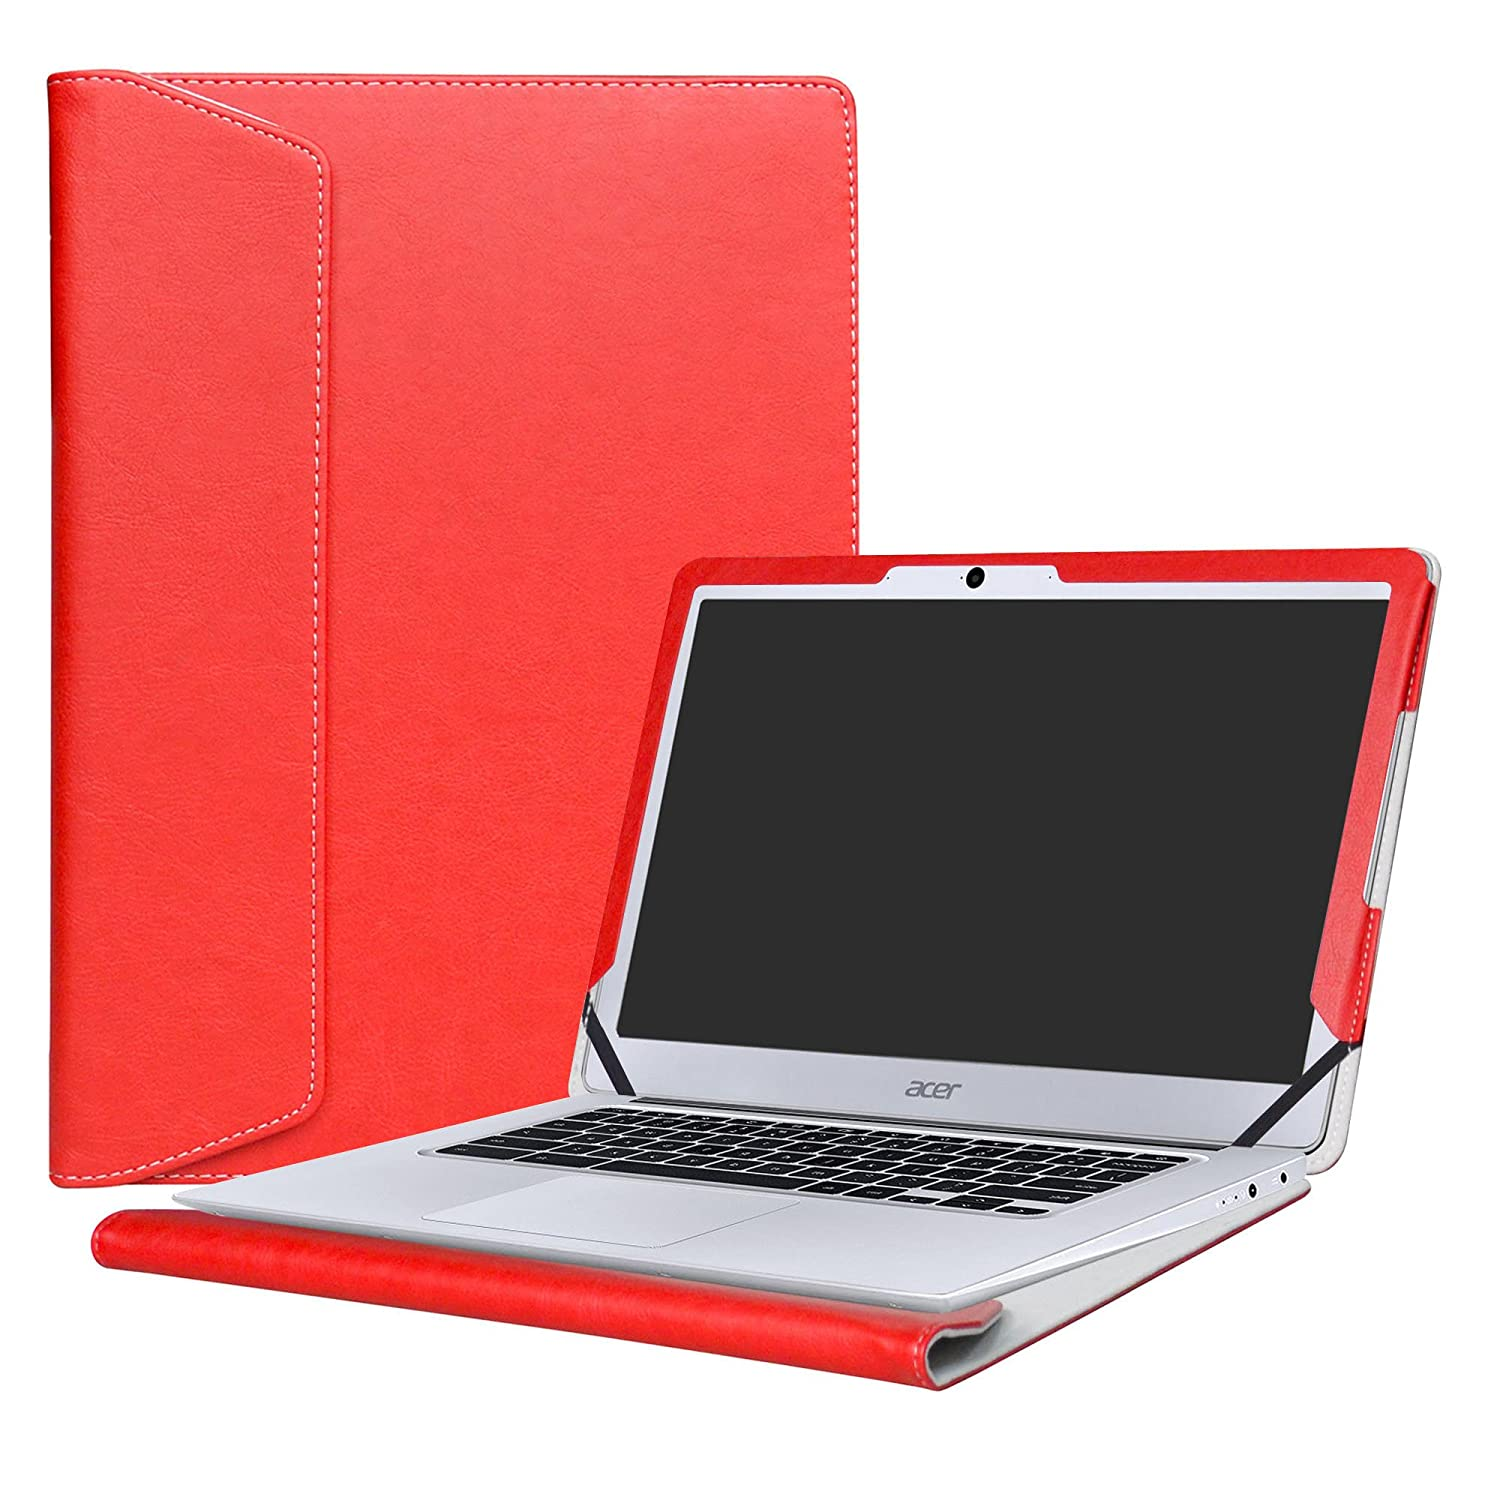 "Alapmk Protective Case Cover for 14"" Acer Chromebook 14 CB3-431 Series Laptop(Not fit ACER CHROMEBOOK 14 for Work CP5-471 Series),Galaxy shengsheng-USAstore TMJ0023-4"